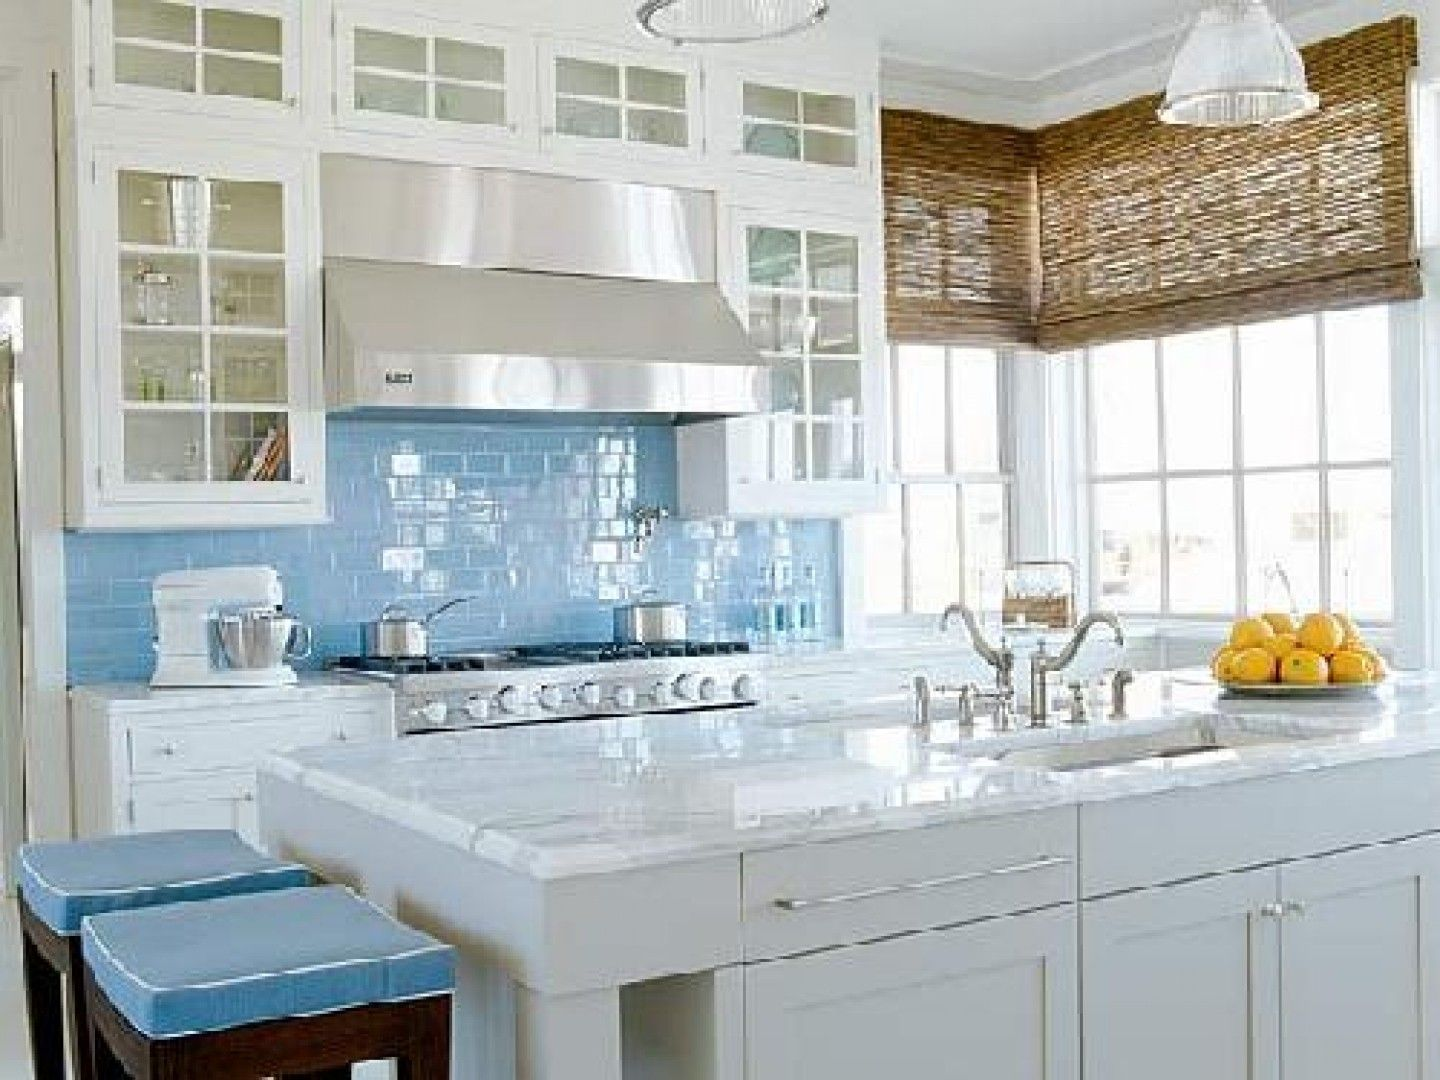 marvellous fantastic kchen tile backsplash ideas whe cabinet 1 bedroom apartment design 1 bedroom